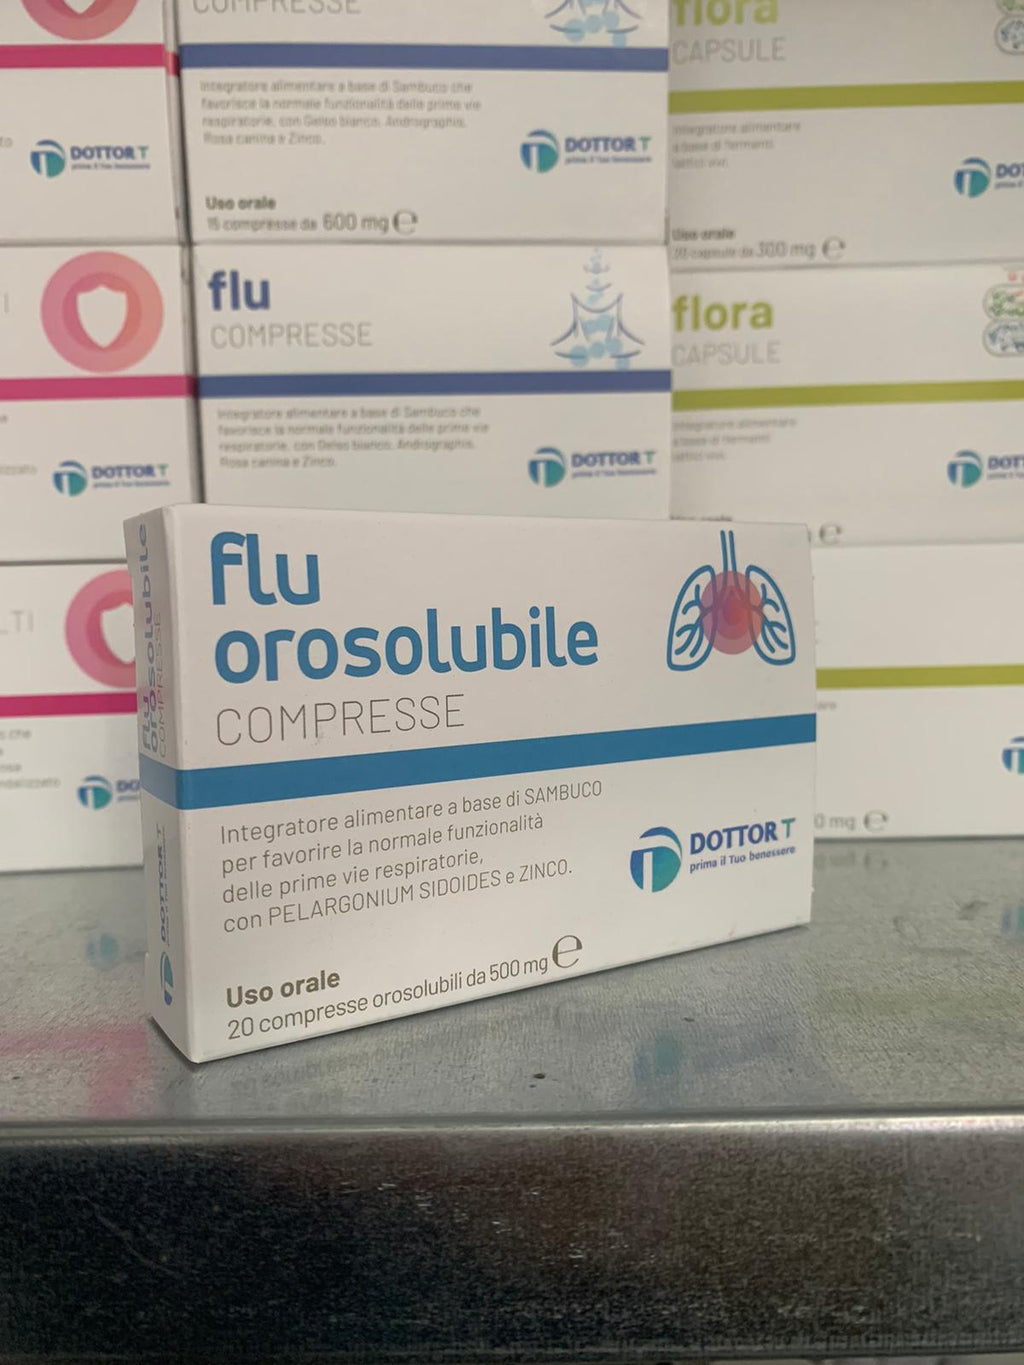 Dottor T  Flu orosolubile